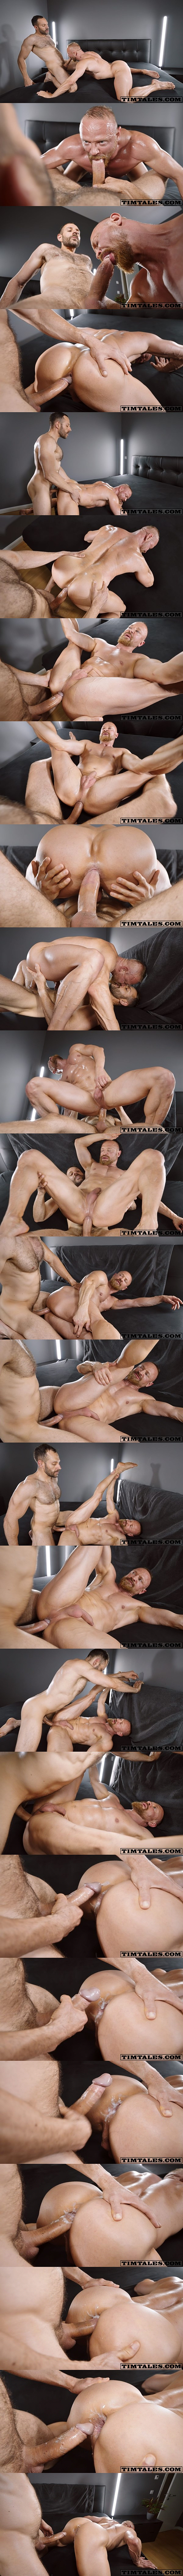 Timtales - masculine big-cocked Brazilian power top Mario Galeno barebacks bearded muscle daddy bottom Guido Stahl in several positions before he breeds Guido 02